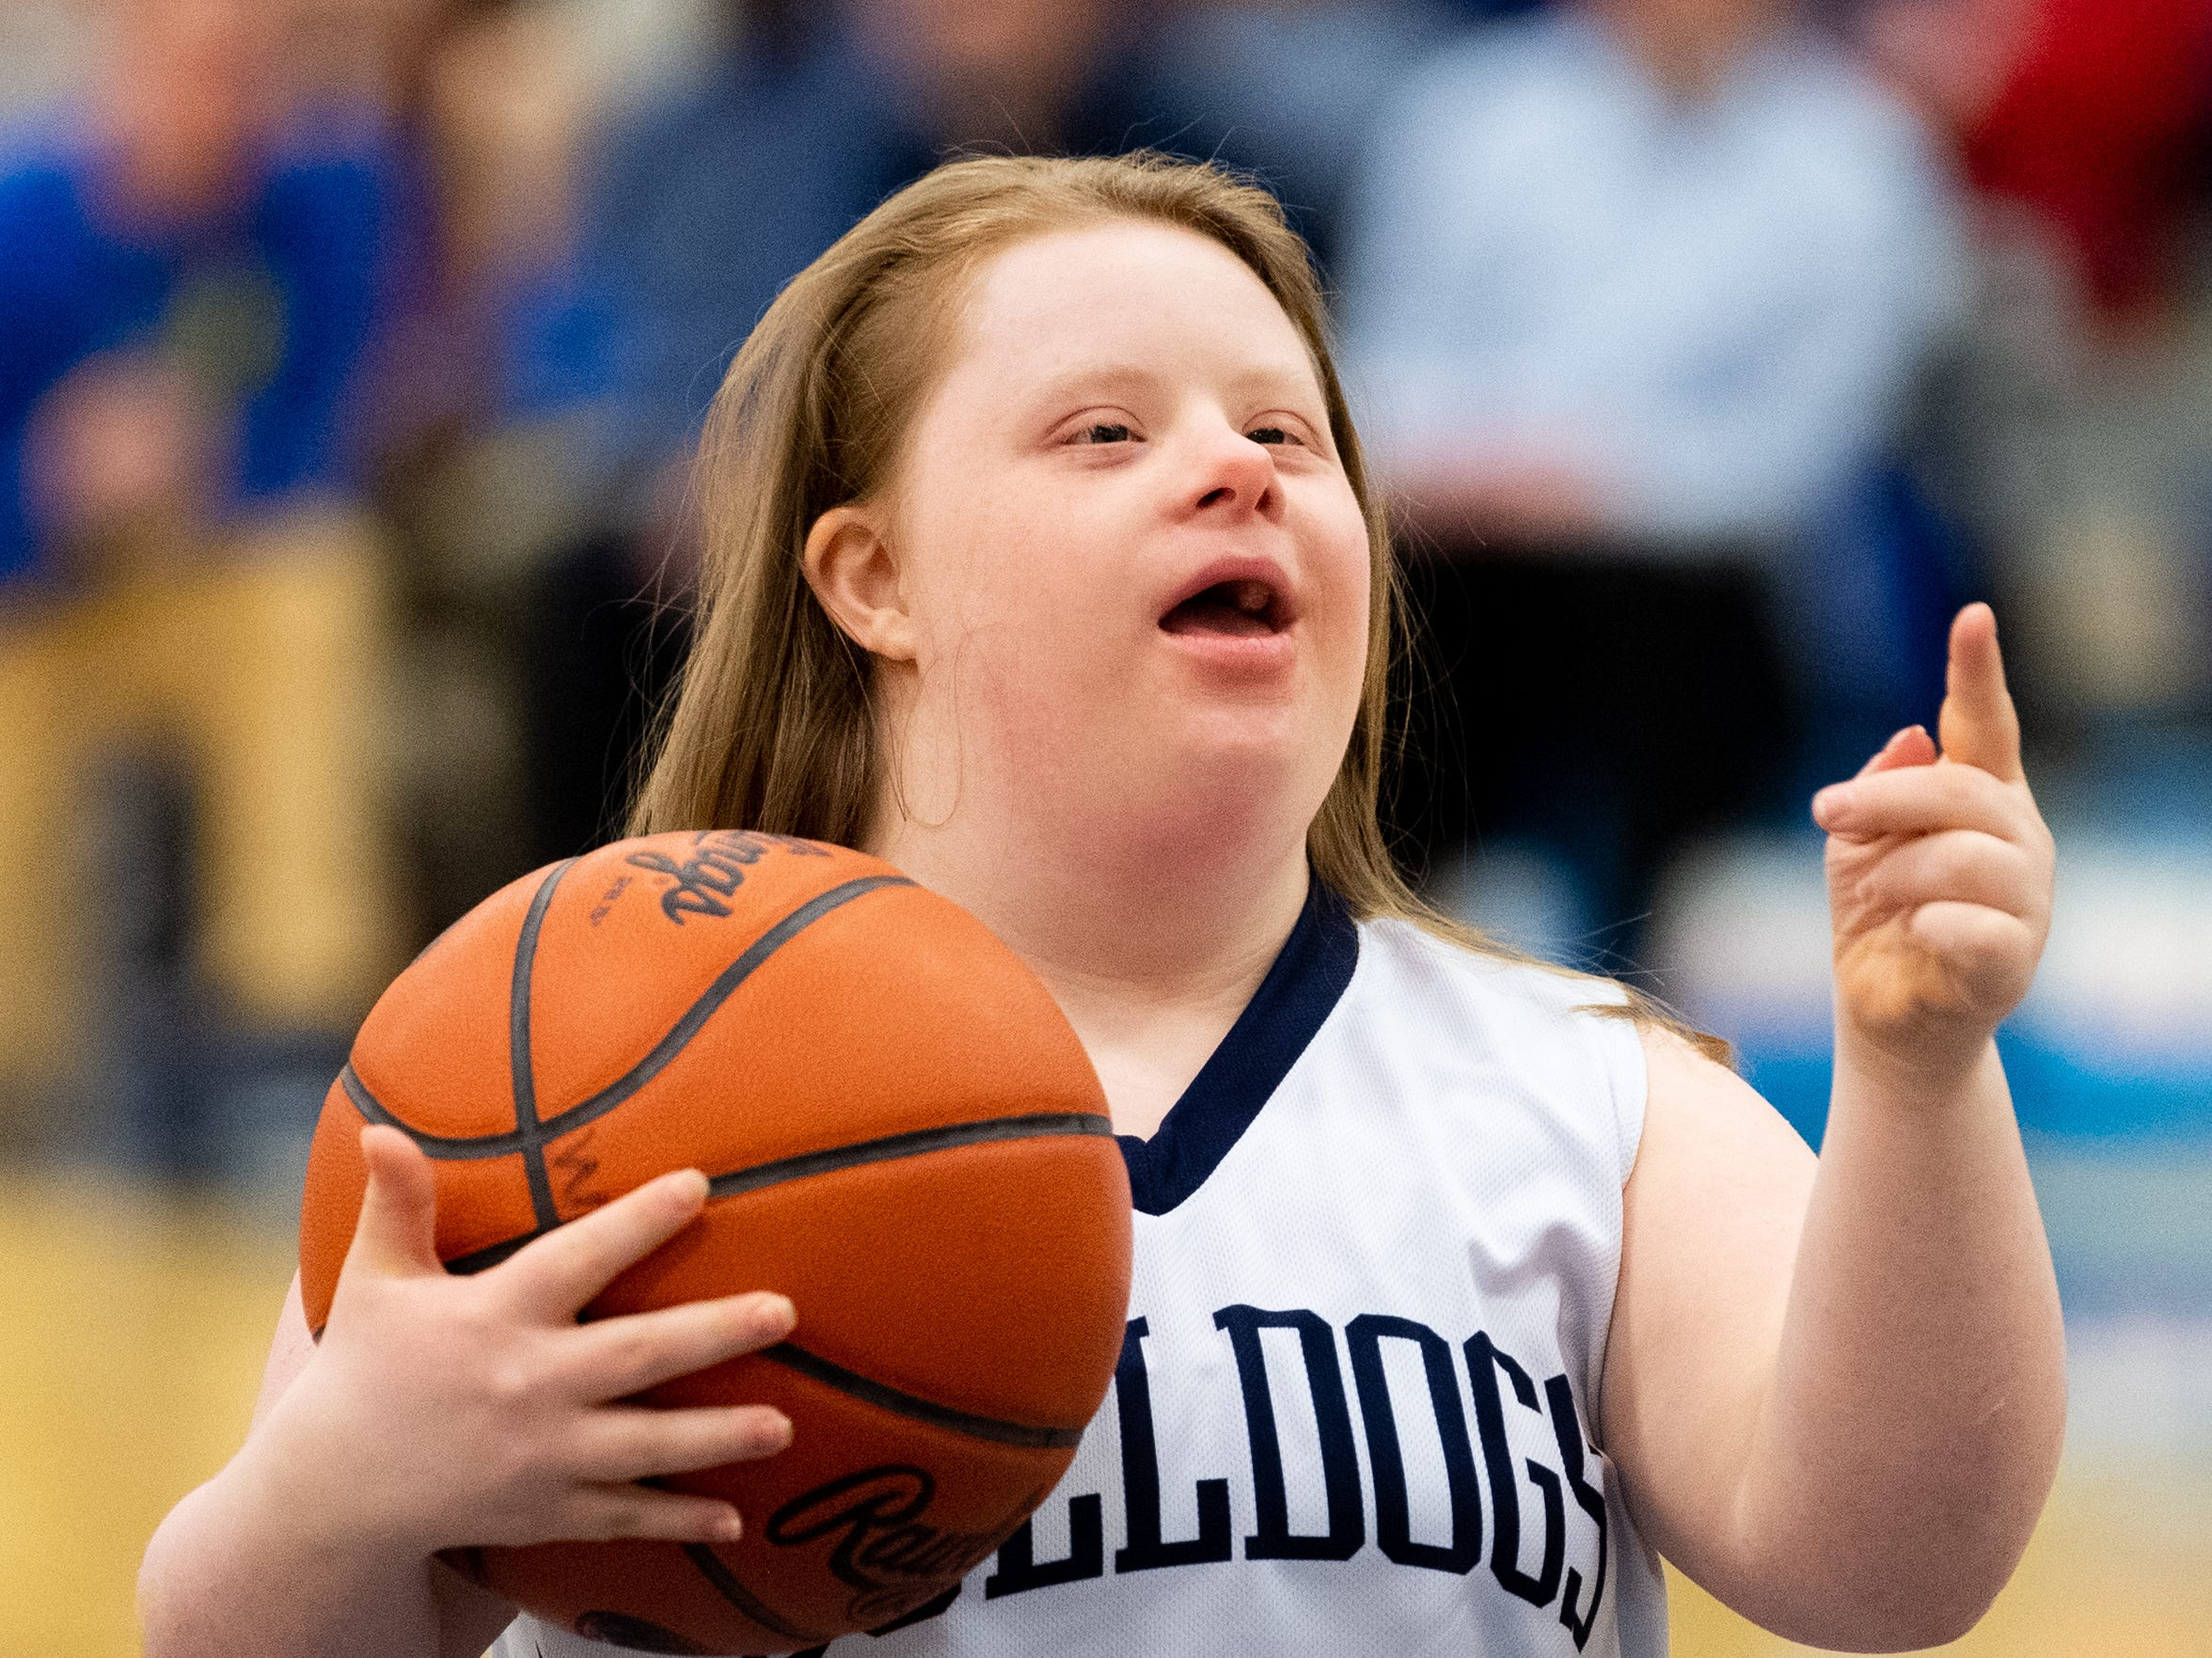 On February 1, 2019, West York recognized Katie Kniery (34), a junior varsity player with down syndrome, during the girls' basketball game between West York and Dover. She took the first shots of the half.